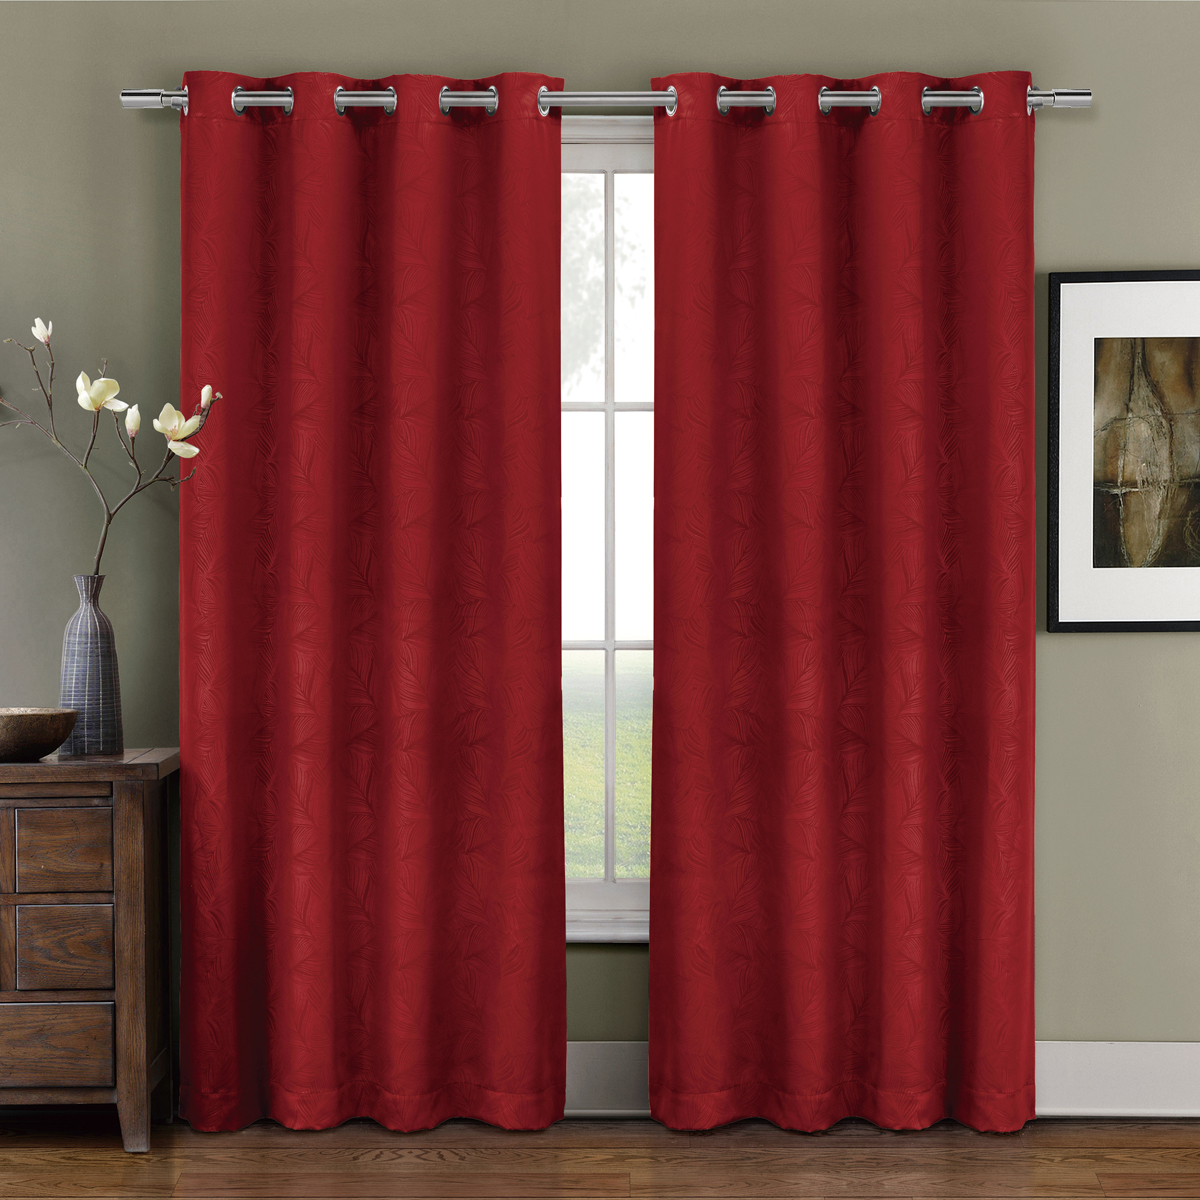 Prairie Blackout Weave Embossed Grommet Curtains Panels Leafy designs Embossed (Single) - 52x63 - Red